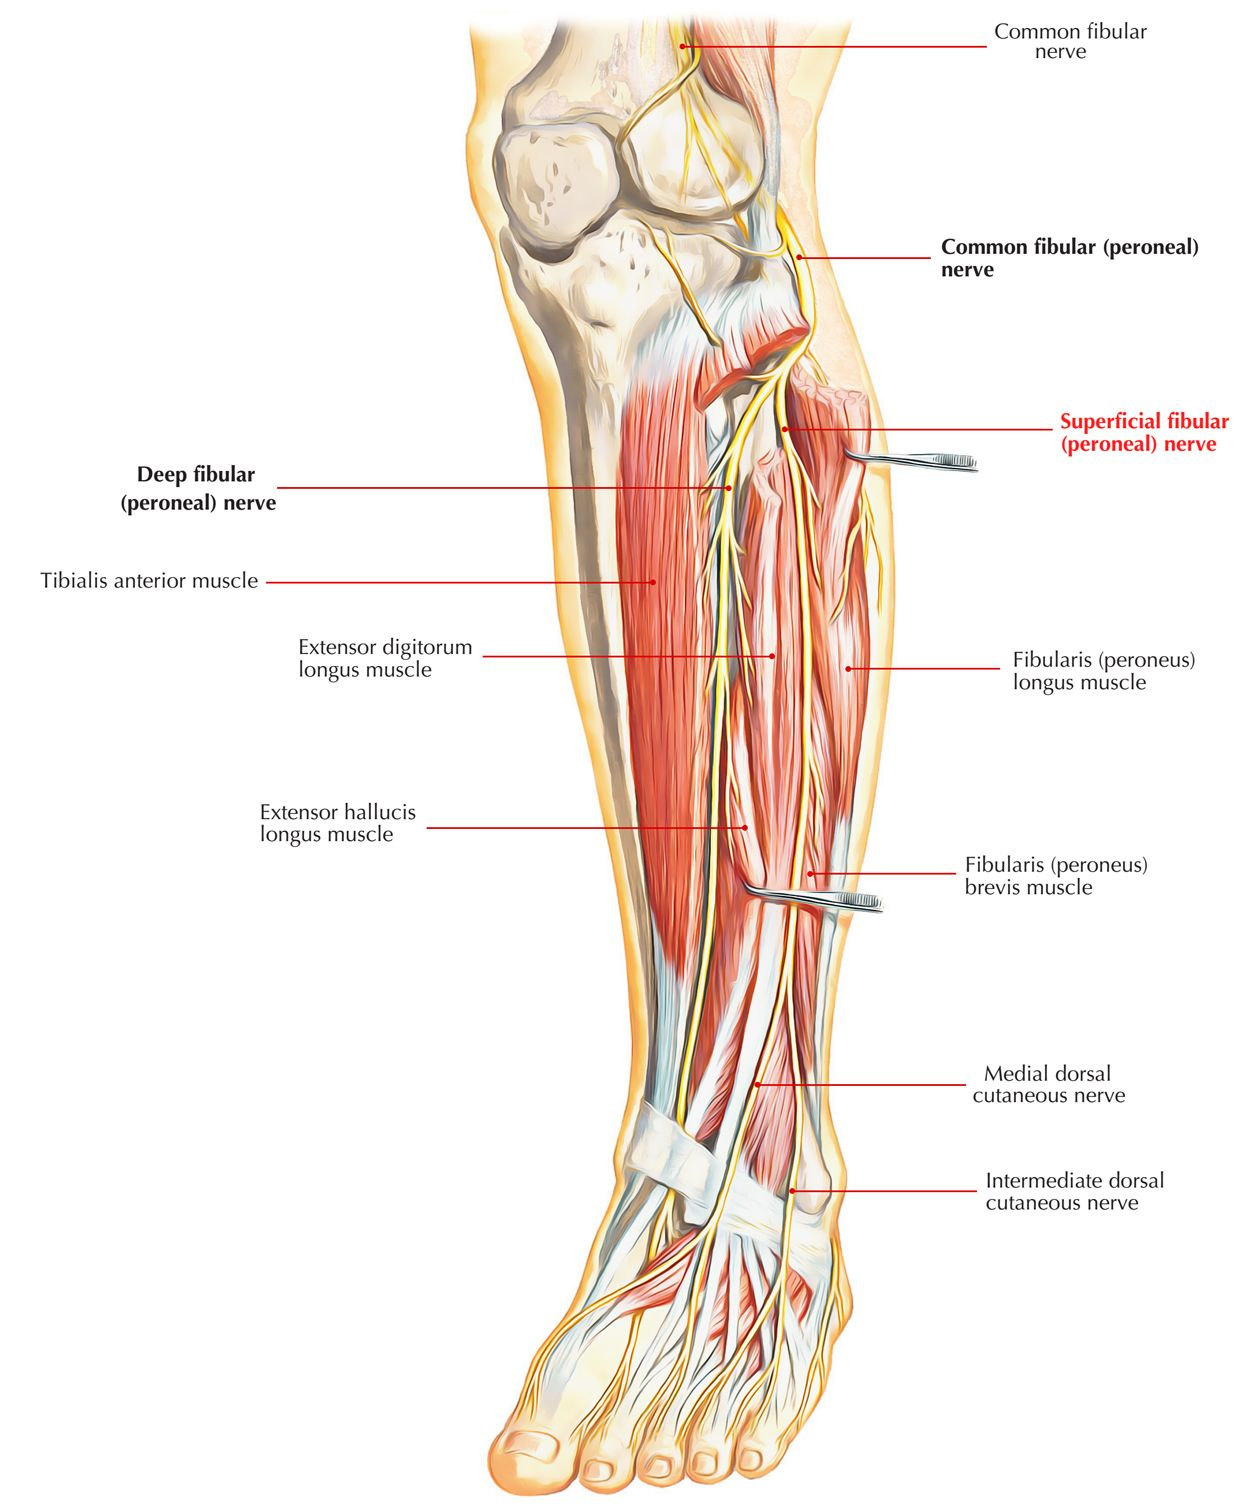 small resolution of foot nerve diagram wiring diagram inside foot diagram nerve endings foot nerve diagram